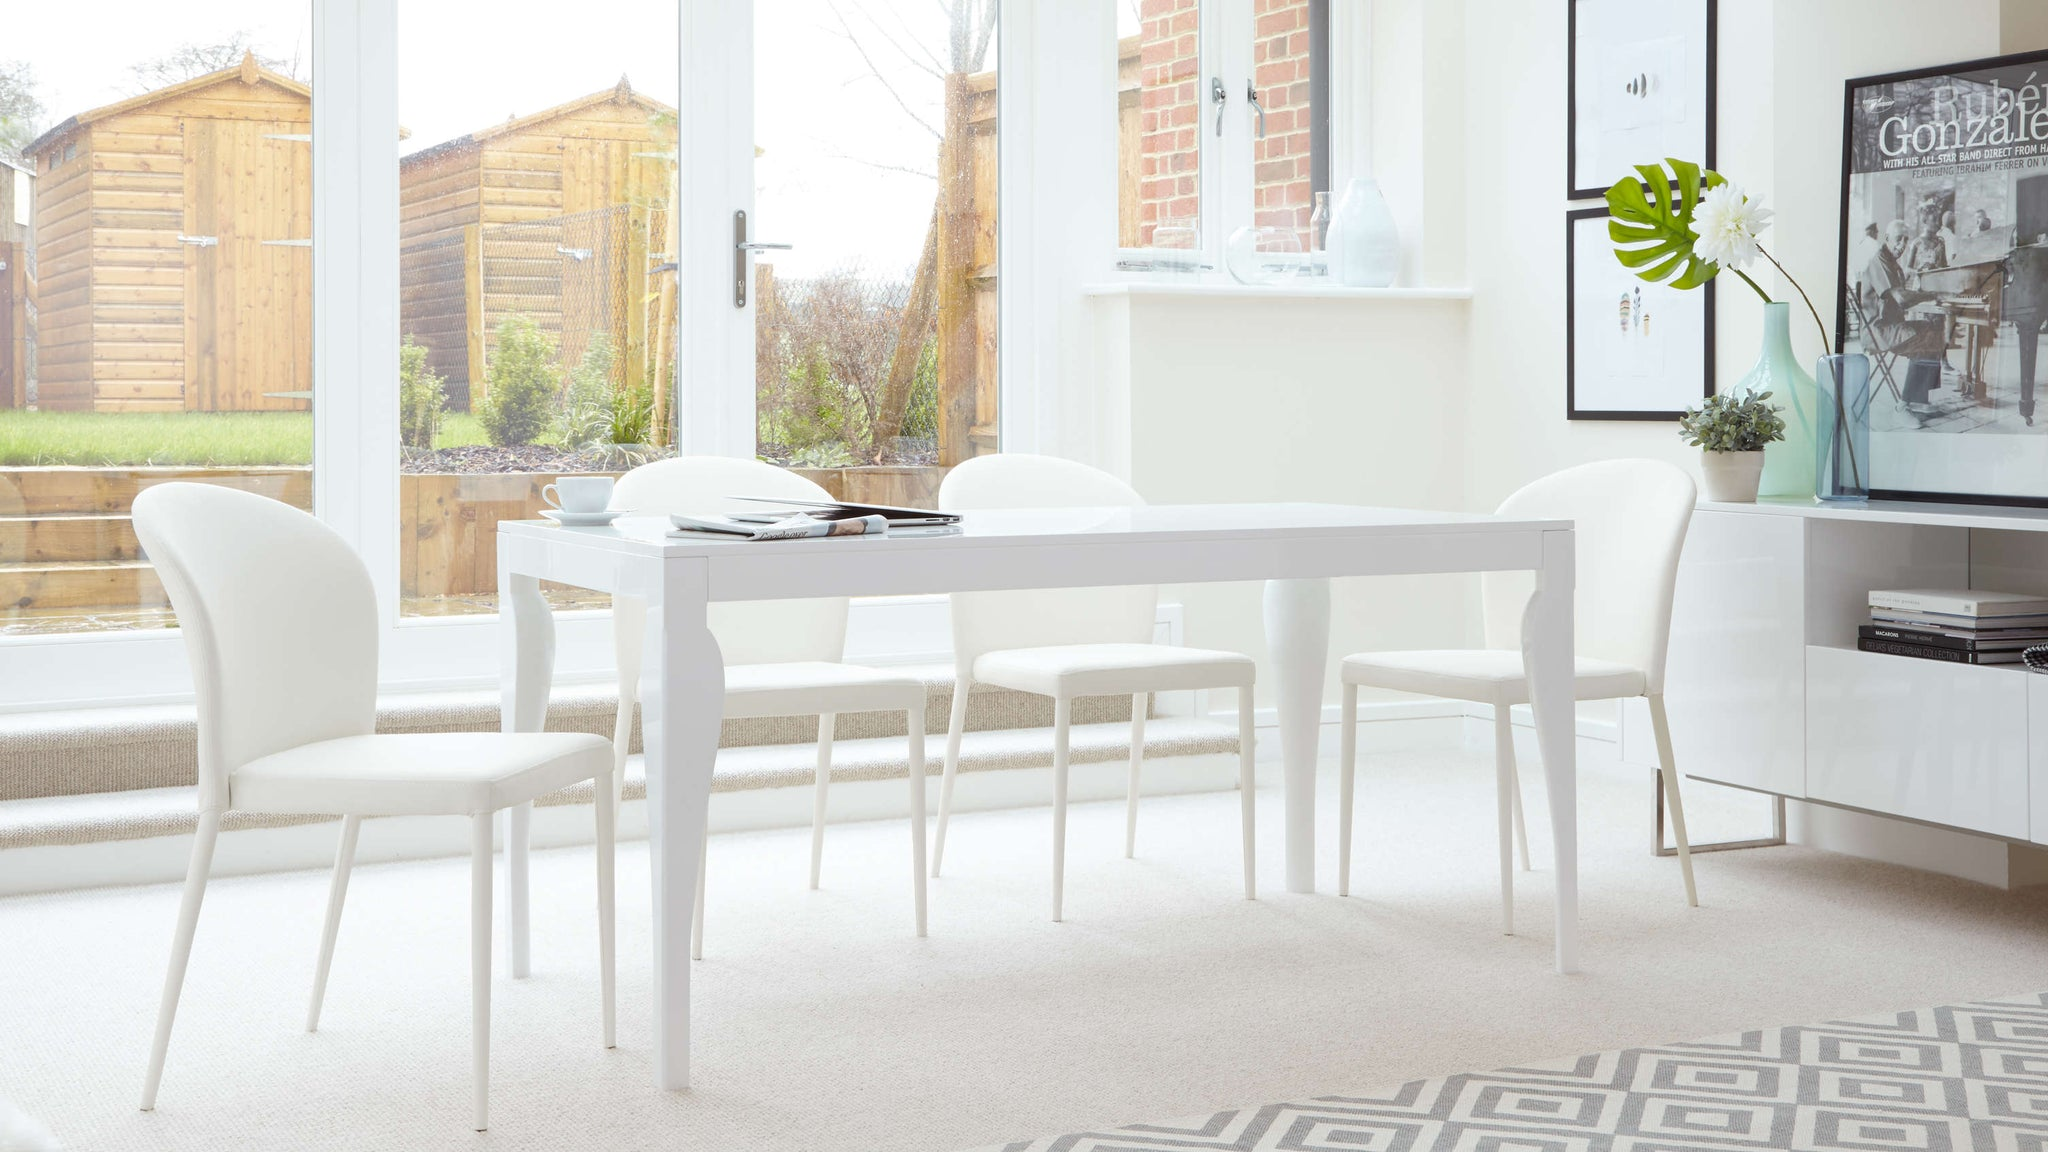 Large White Gloss Dining Set with White Chairs